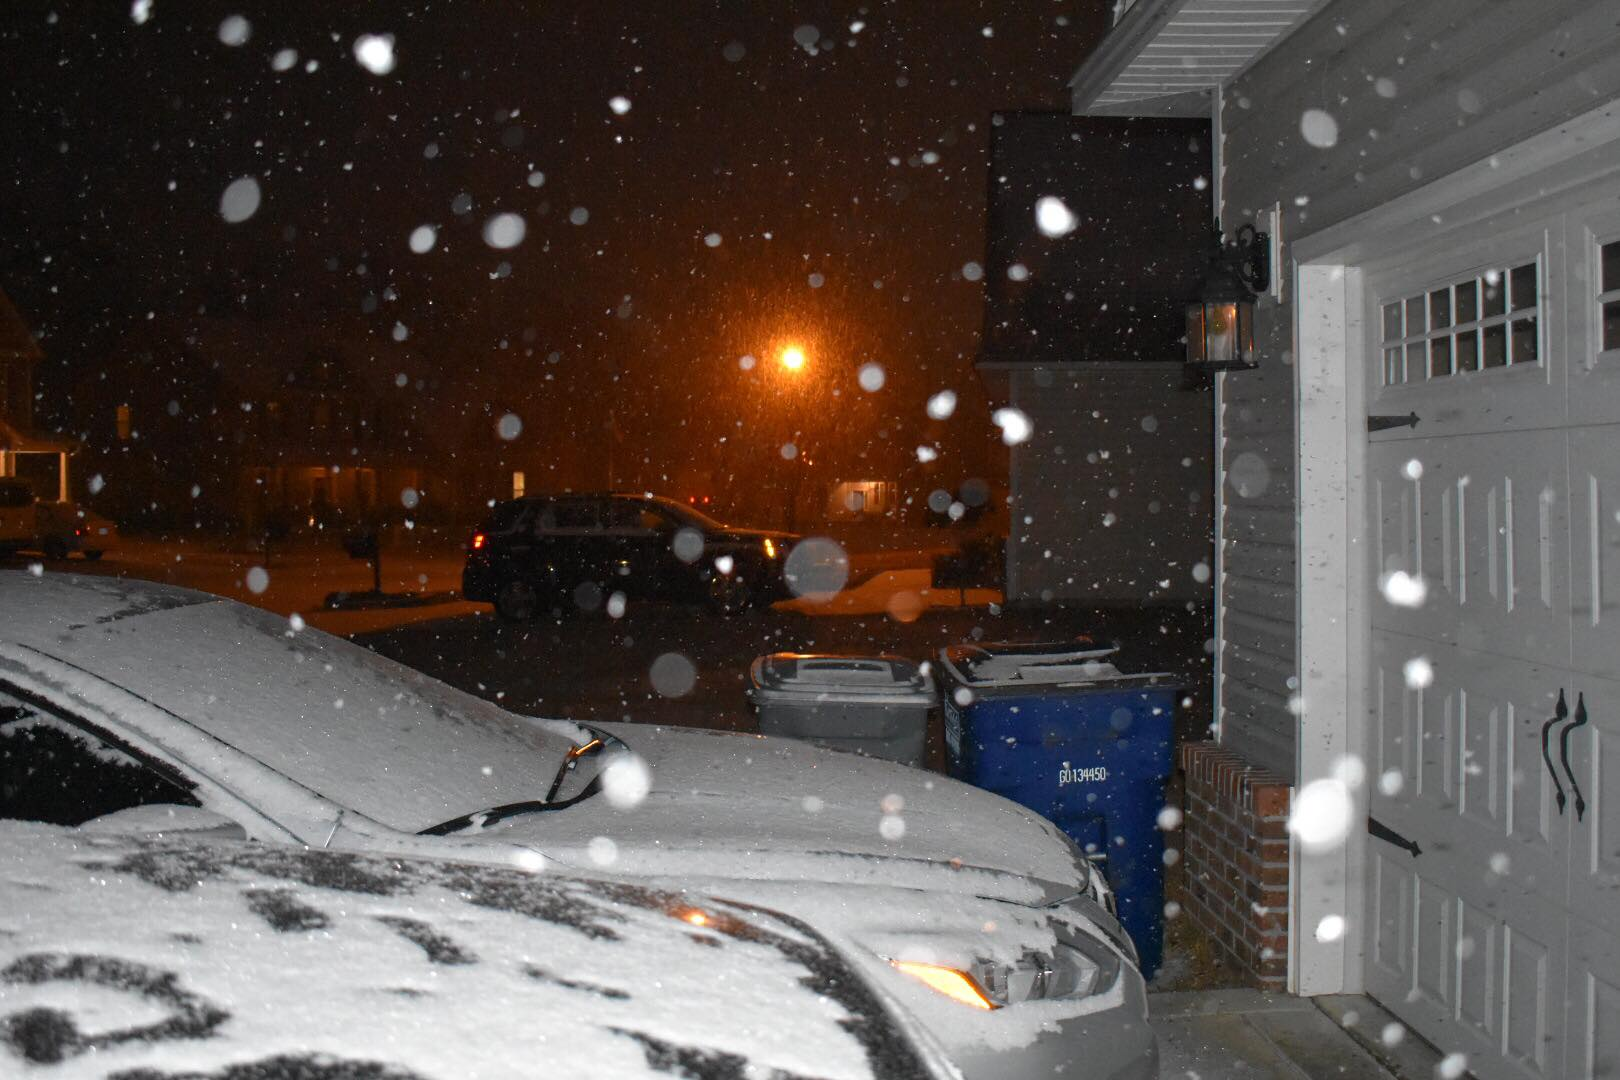 <div class='meta'><div class='origin-logo' data-origin='none'></div><span class='caption-text' data-credit='Krishawn Royal - ABC11 Eyewitness'>Snow in Raeford</span></div>